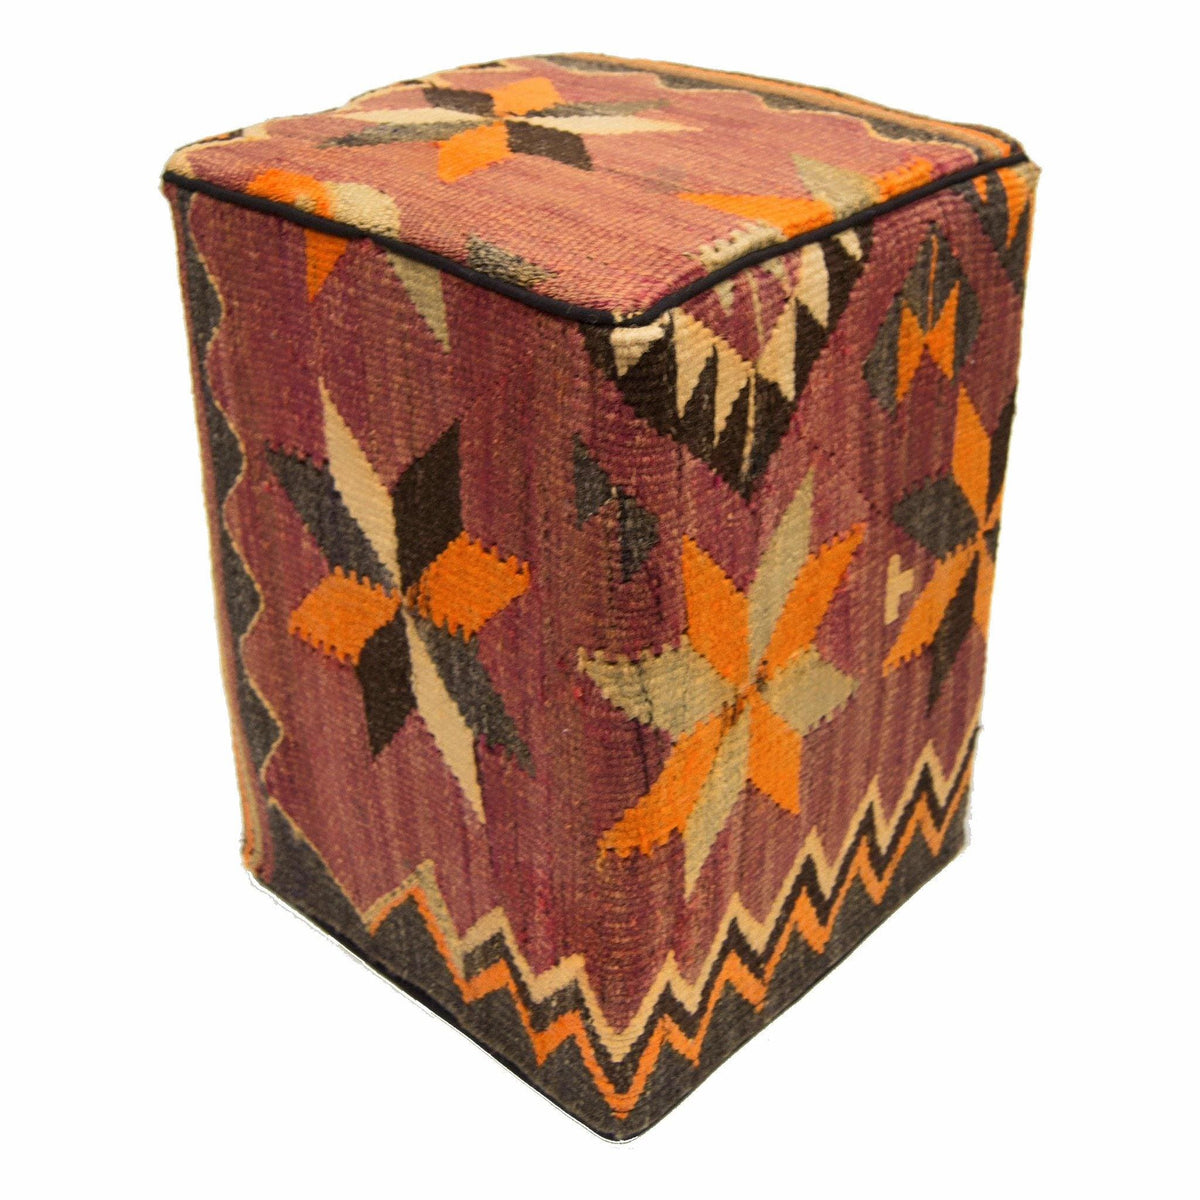 35cm x 35cm Persian Kilim Footstool Persian-Rug | House-of-Haghi | NewMarket | Auckland | NZ | Handmade Persian Rugs | Hand Knotted Persian Rugs